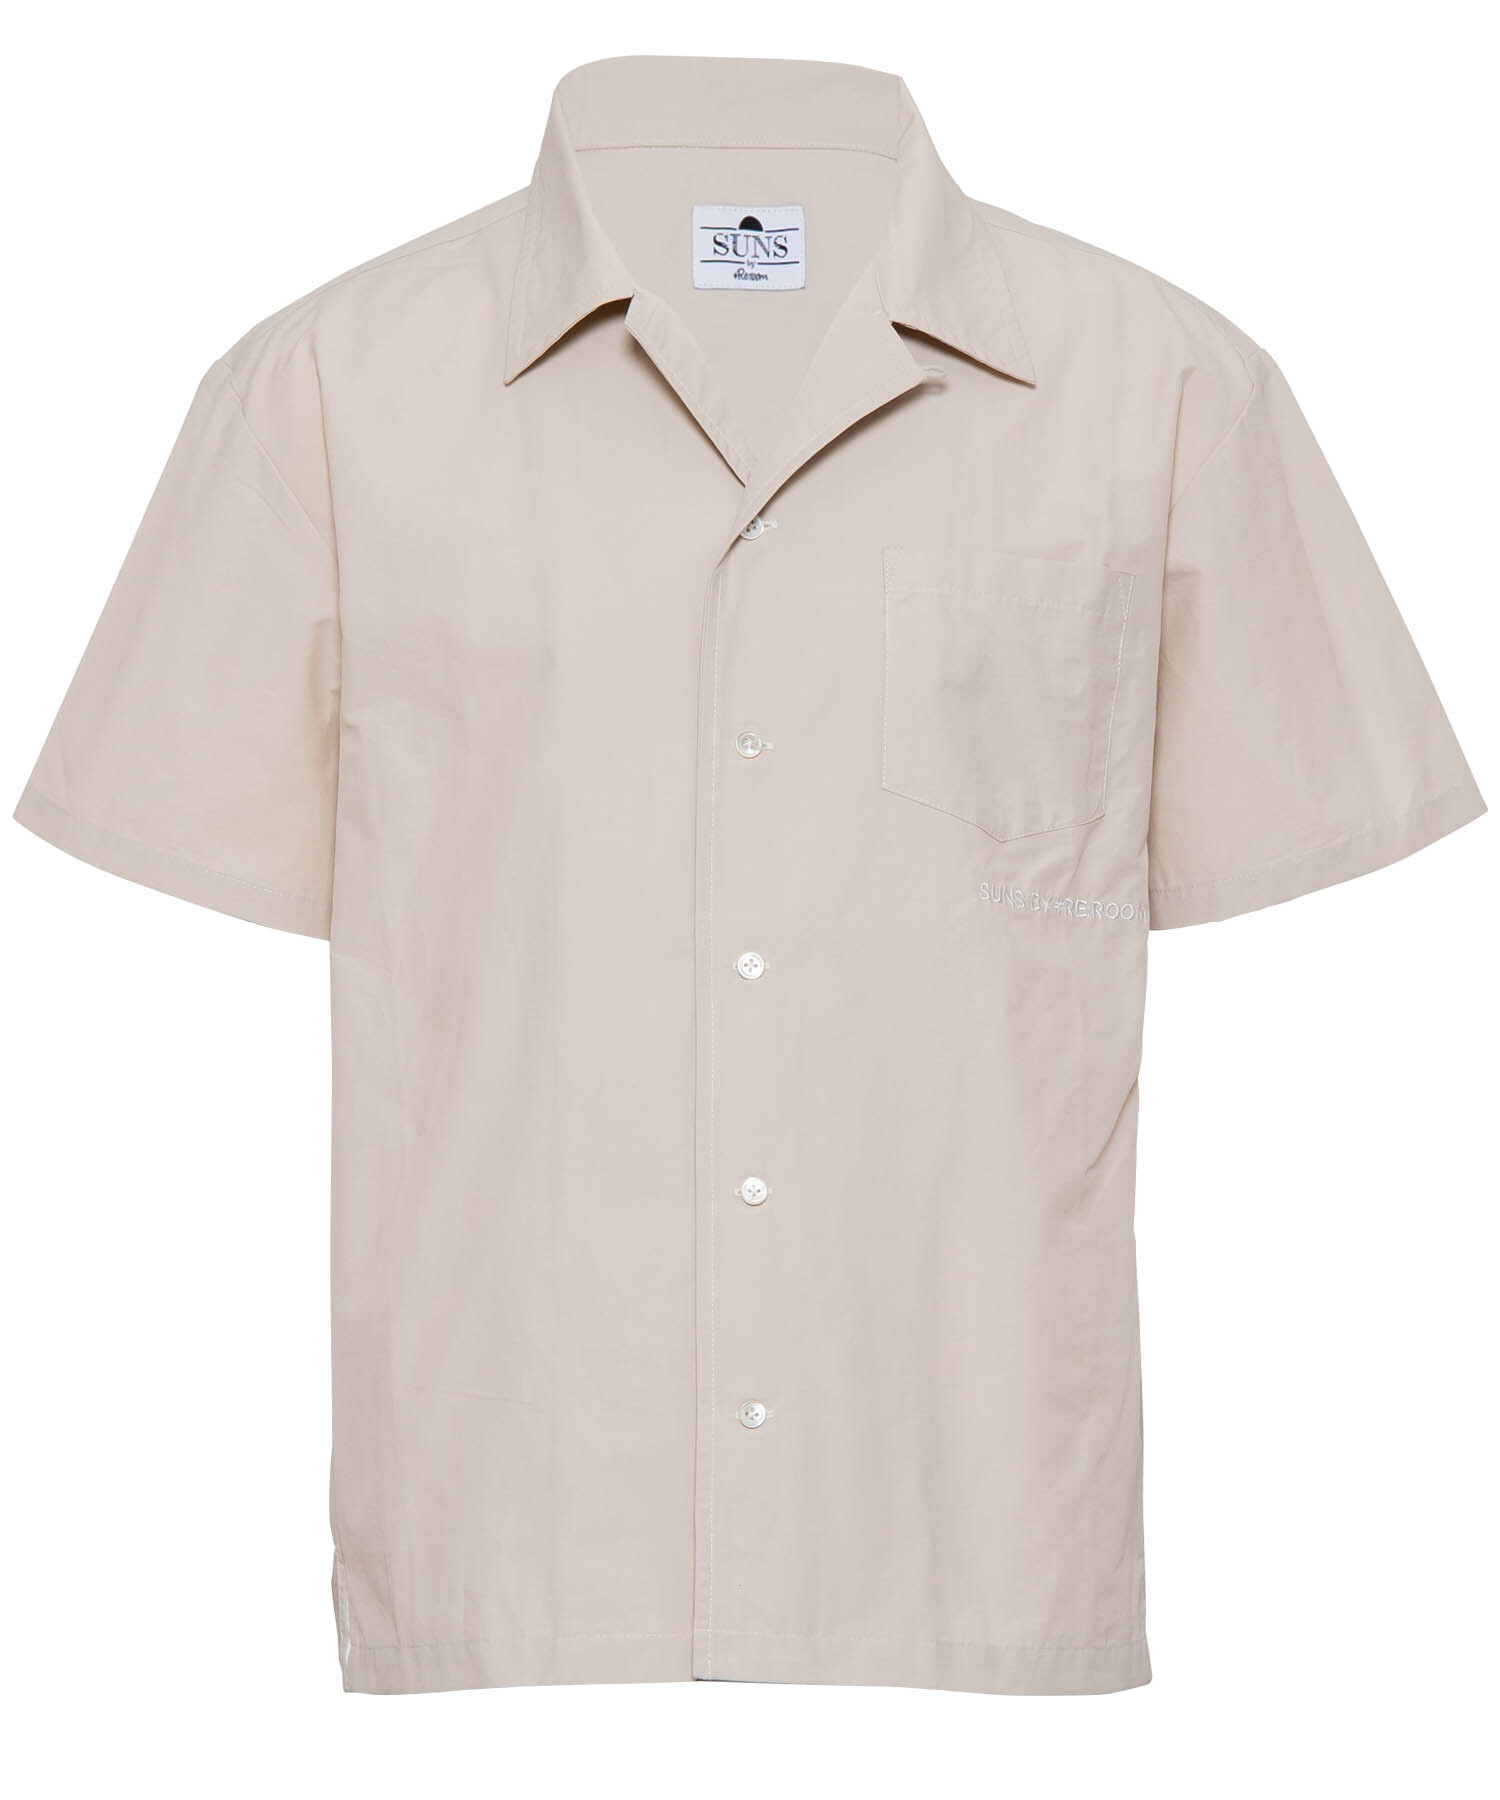 SUNS EMBROIDERY SIDE LINE SHIRTS[RSS001]